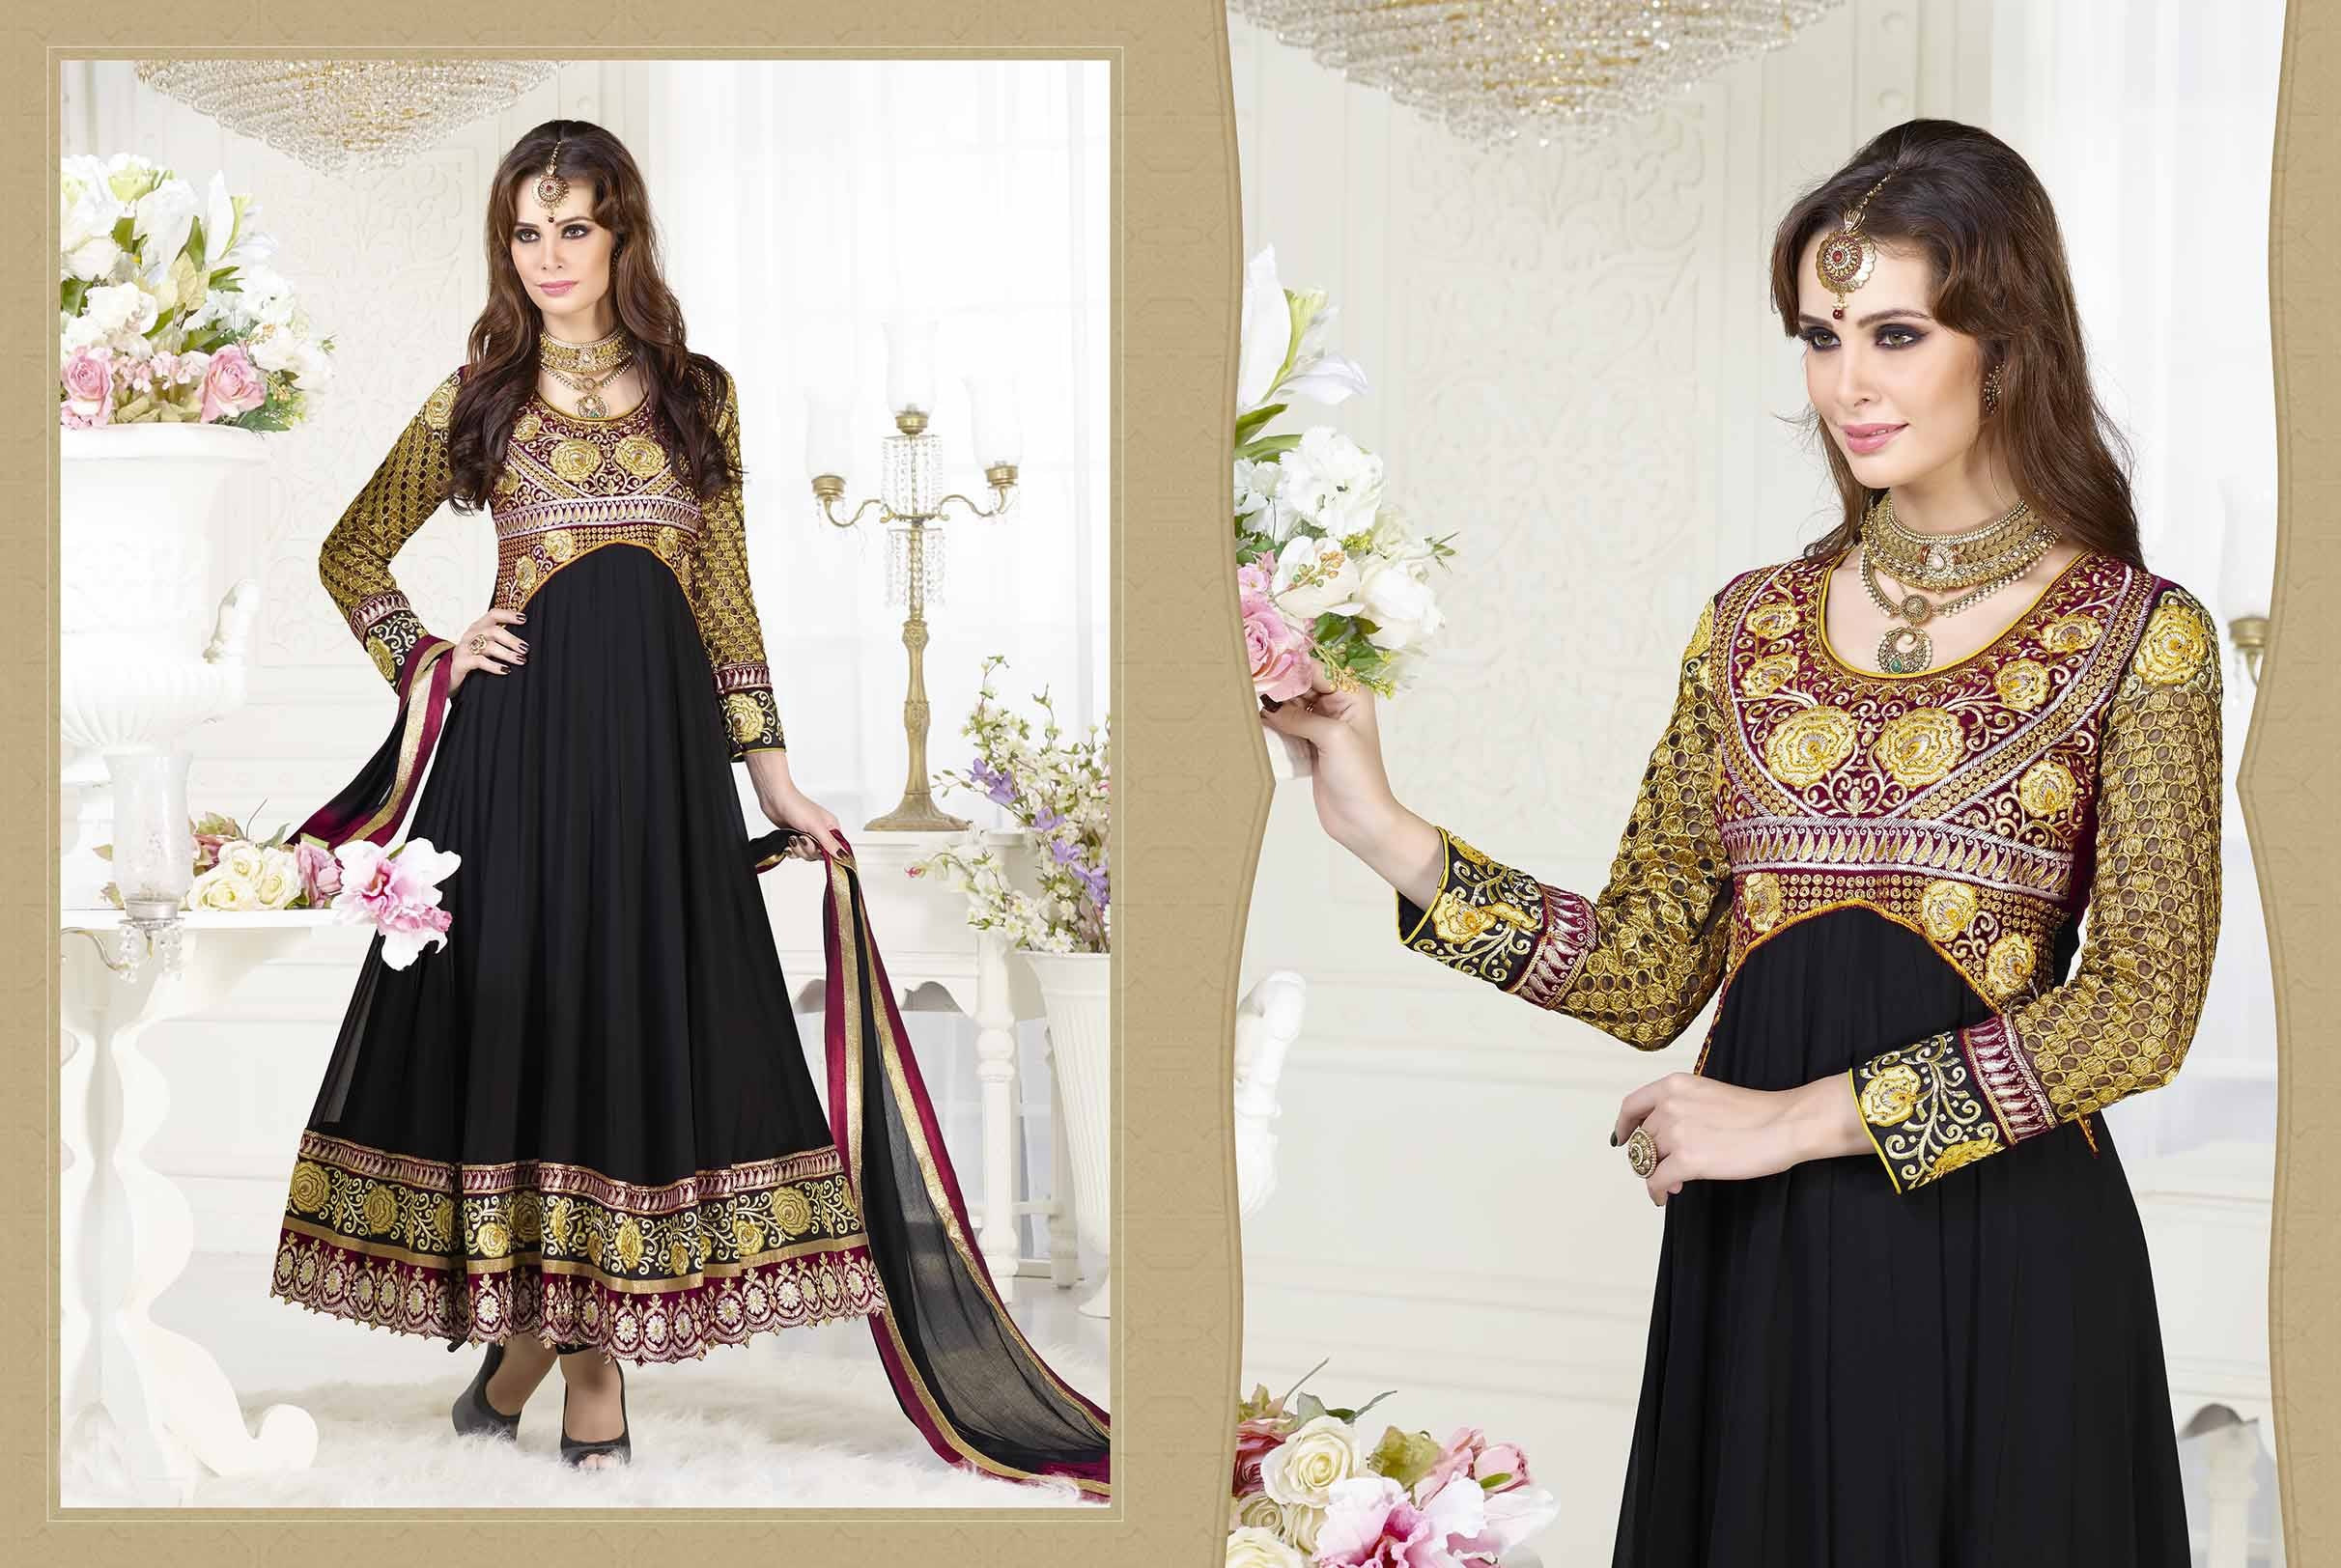 Indian-Designer-Ethnic-Beautiful-Black-Long-Anarkali-Salwar-Kameez-Dress-Suit-d28ed543-767f-488d-8cdf-d8af4fdb6042